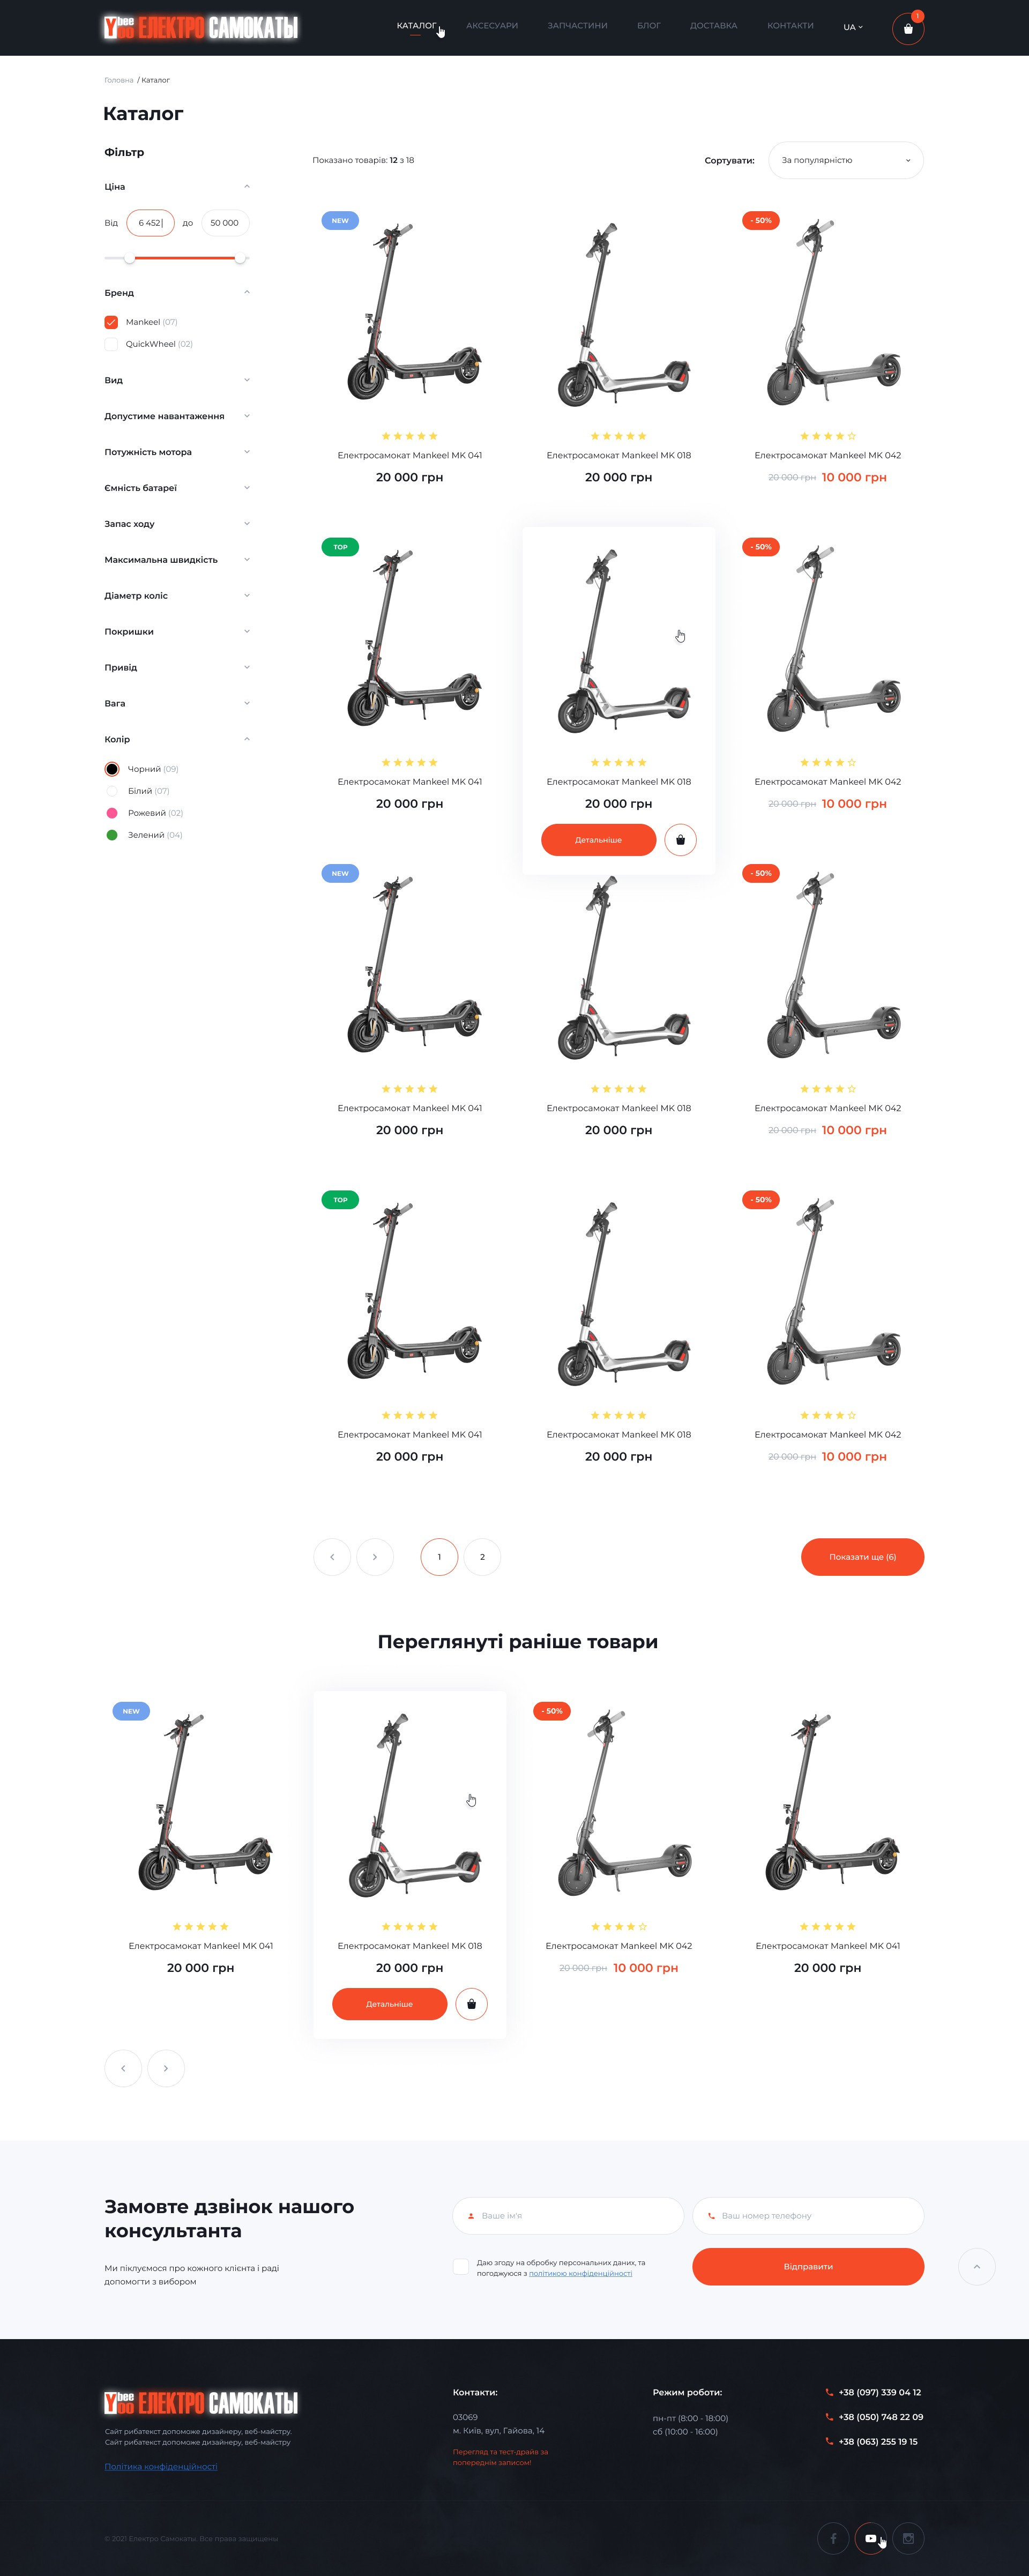 Scooter_02.0_Catalog_1.0